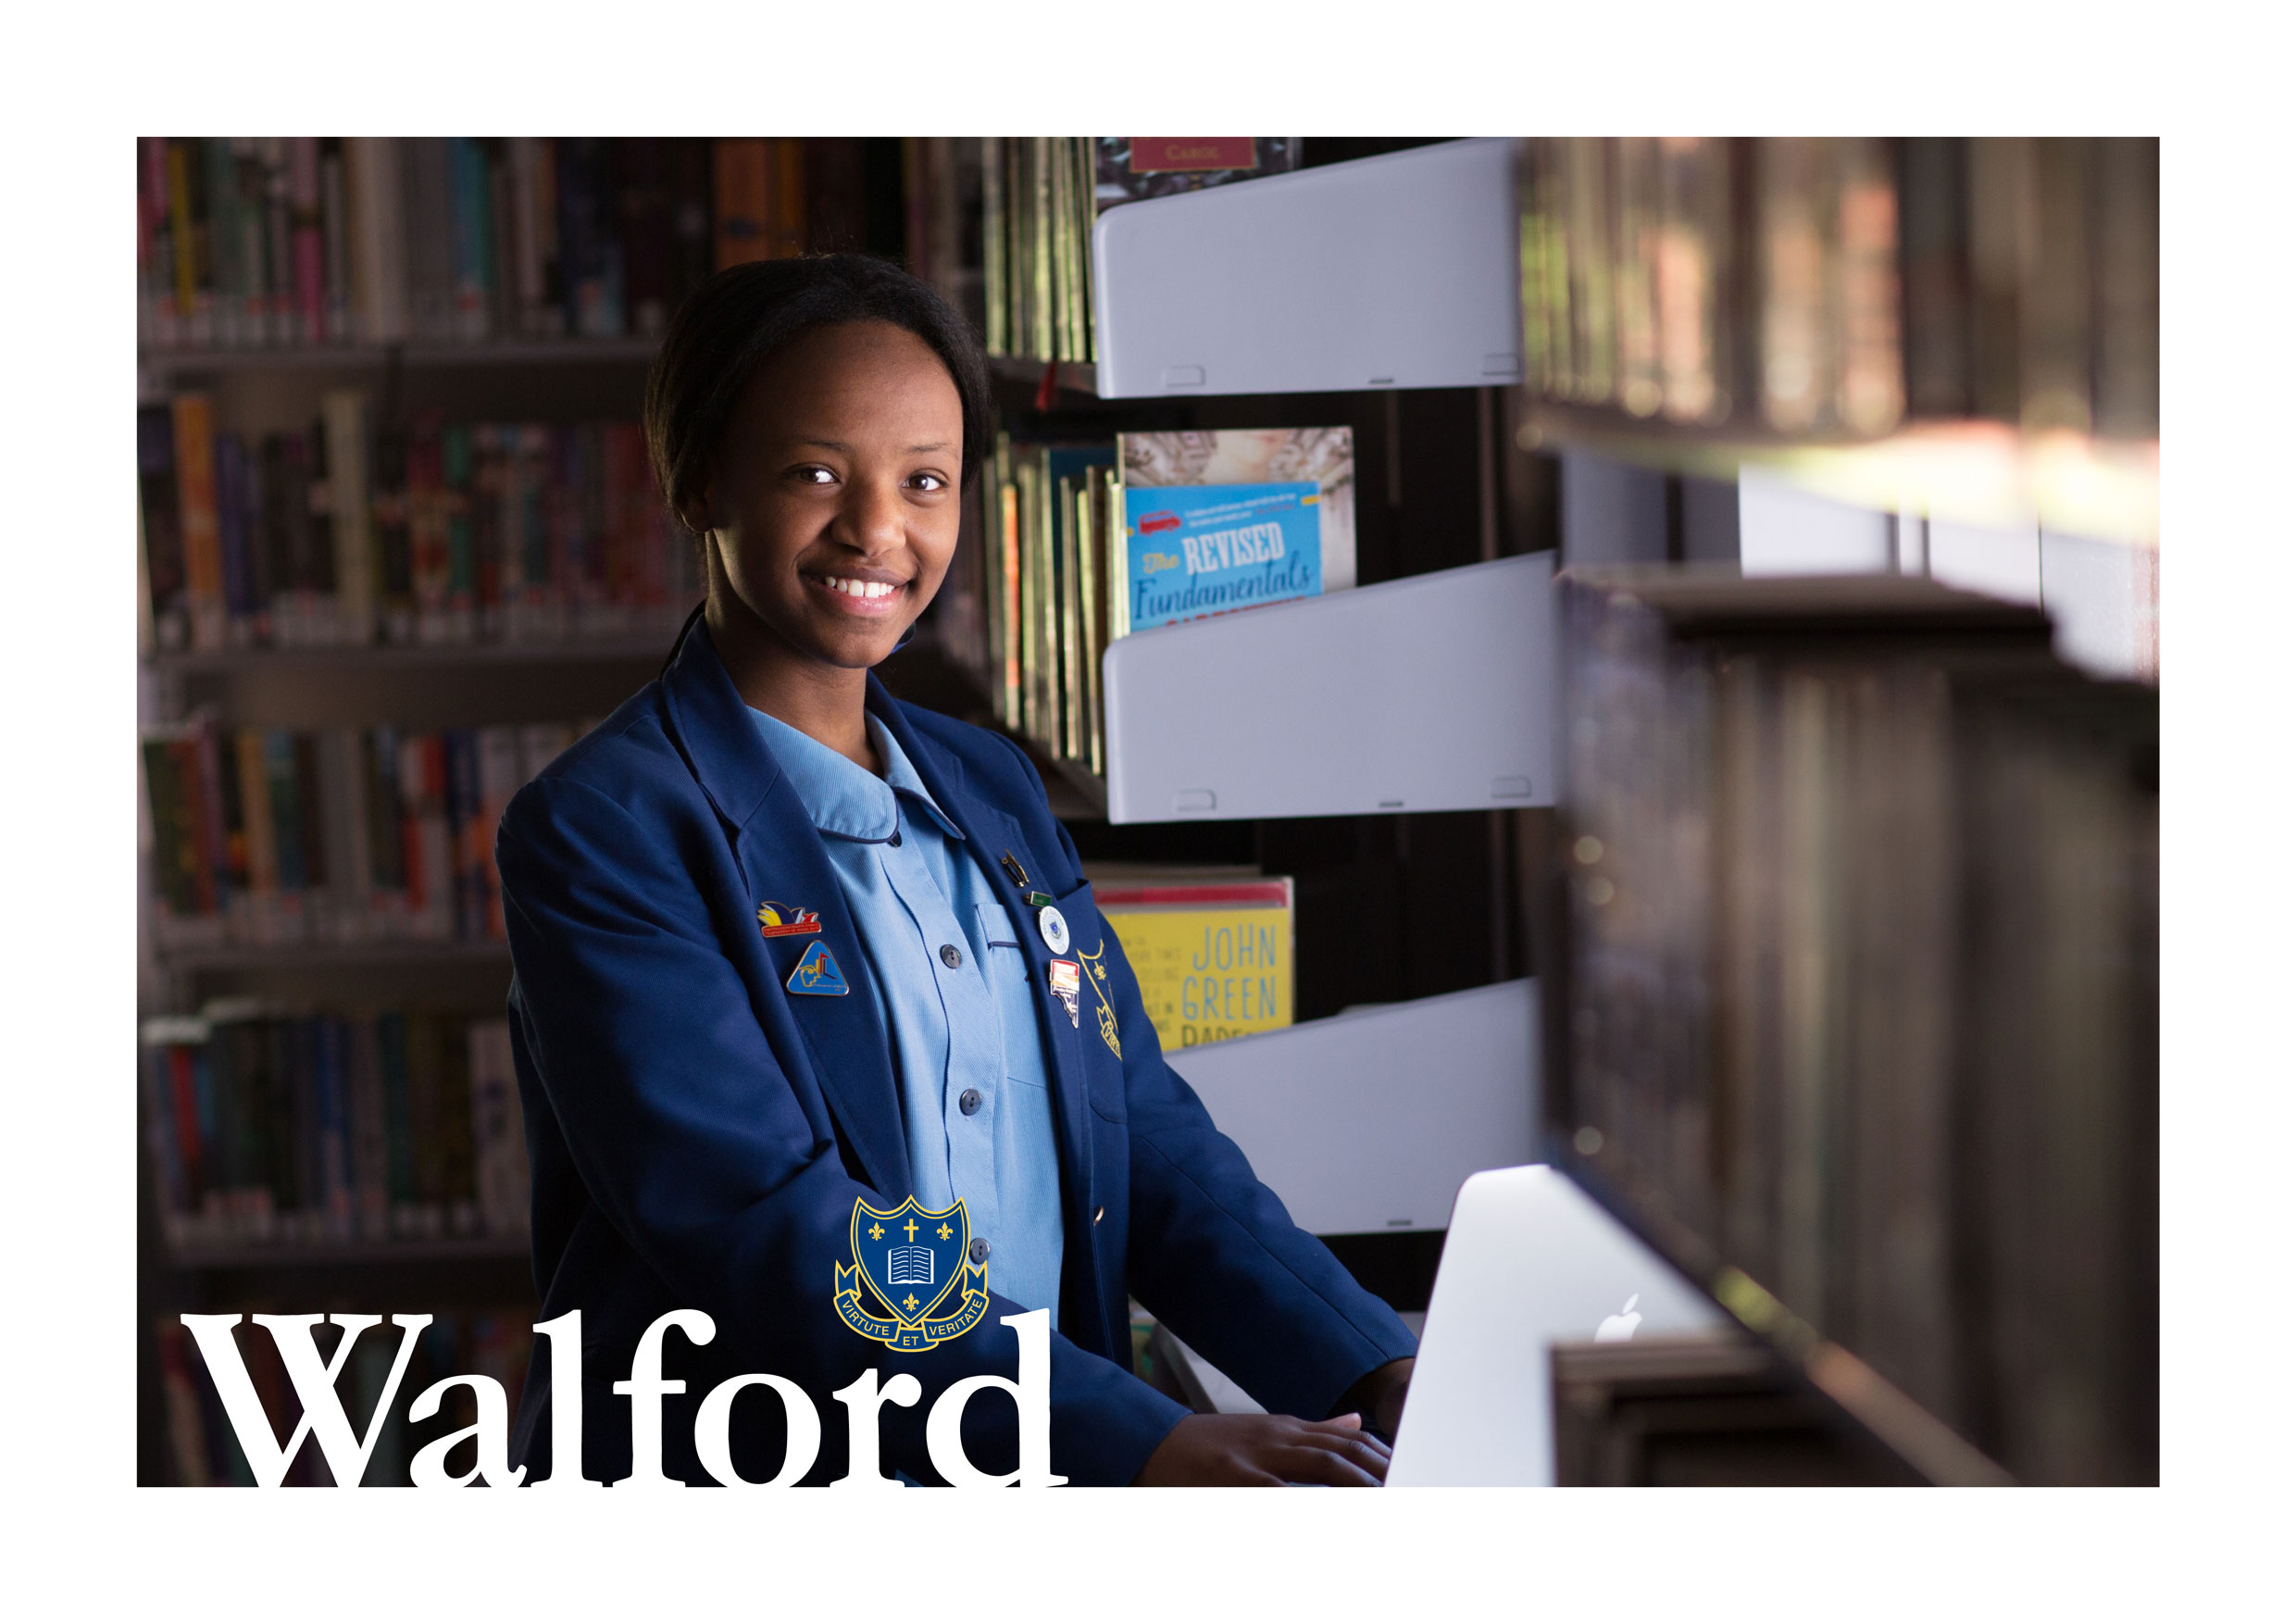 WALFORD-BRANDING-IMAGES_20